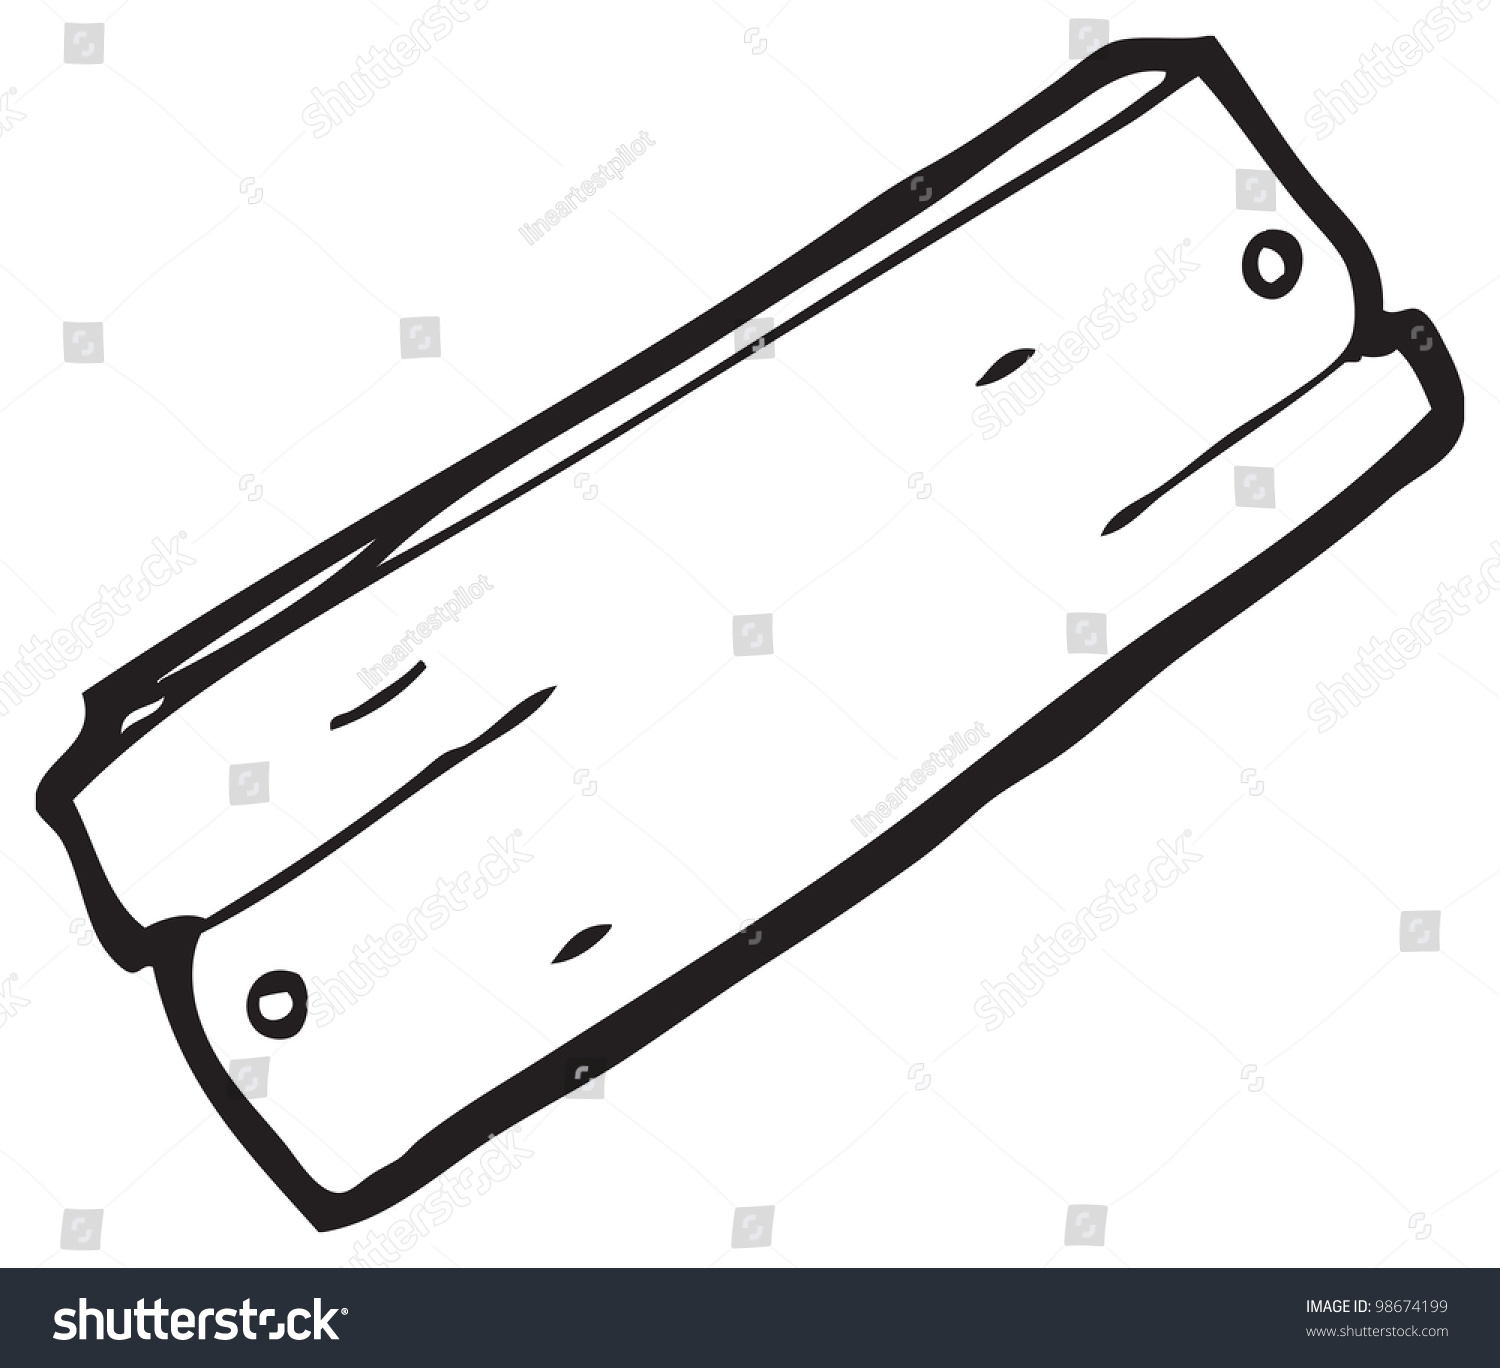 Cartoon wooden plank stock illustration